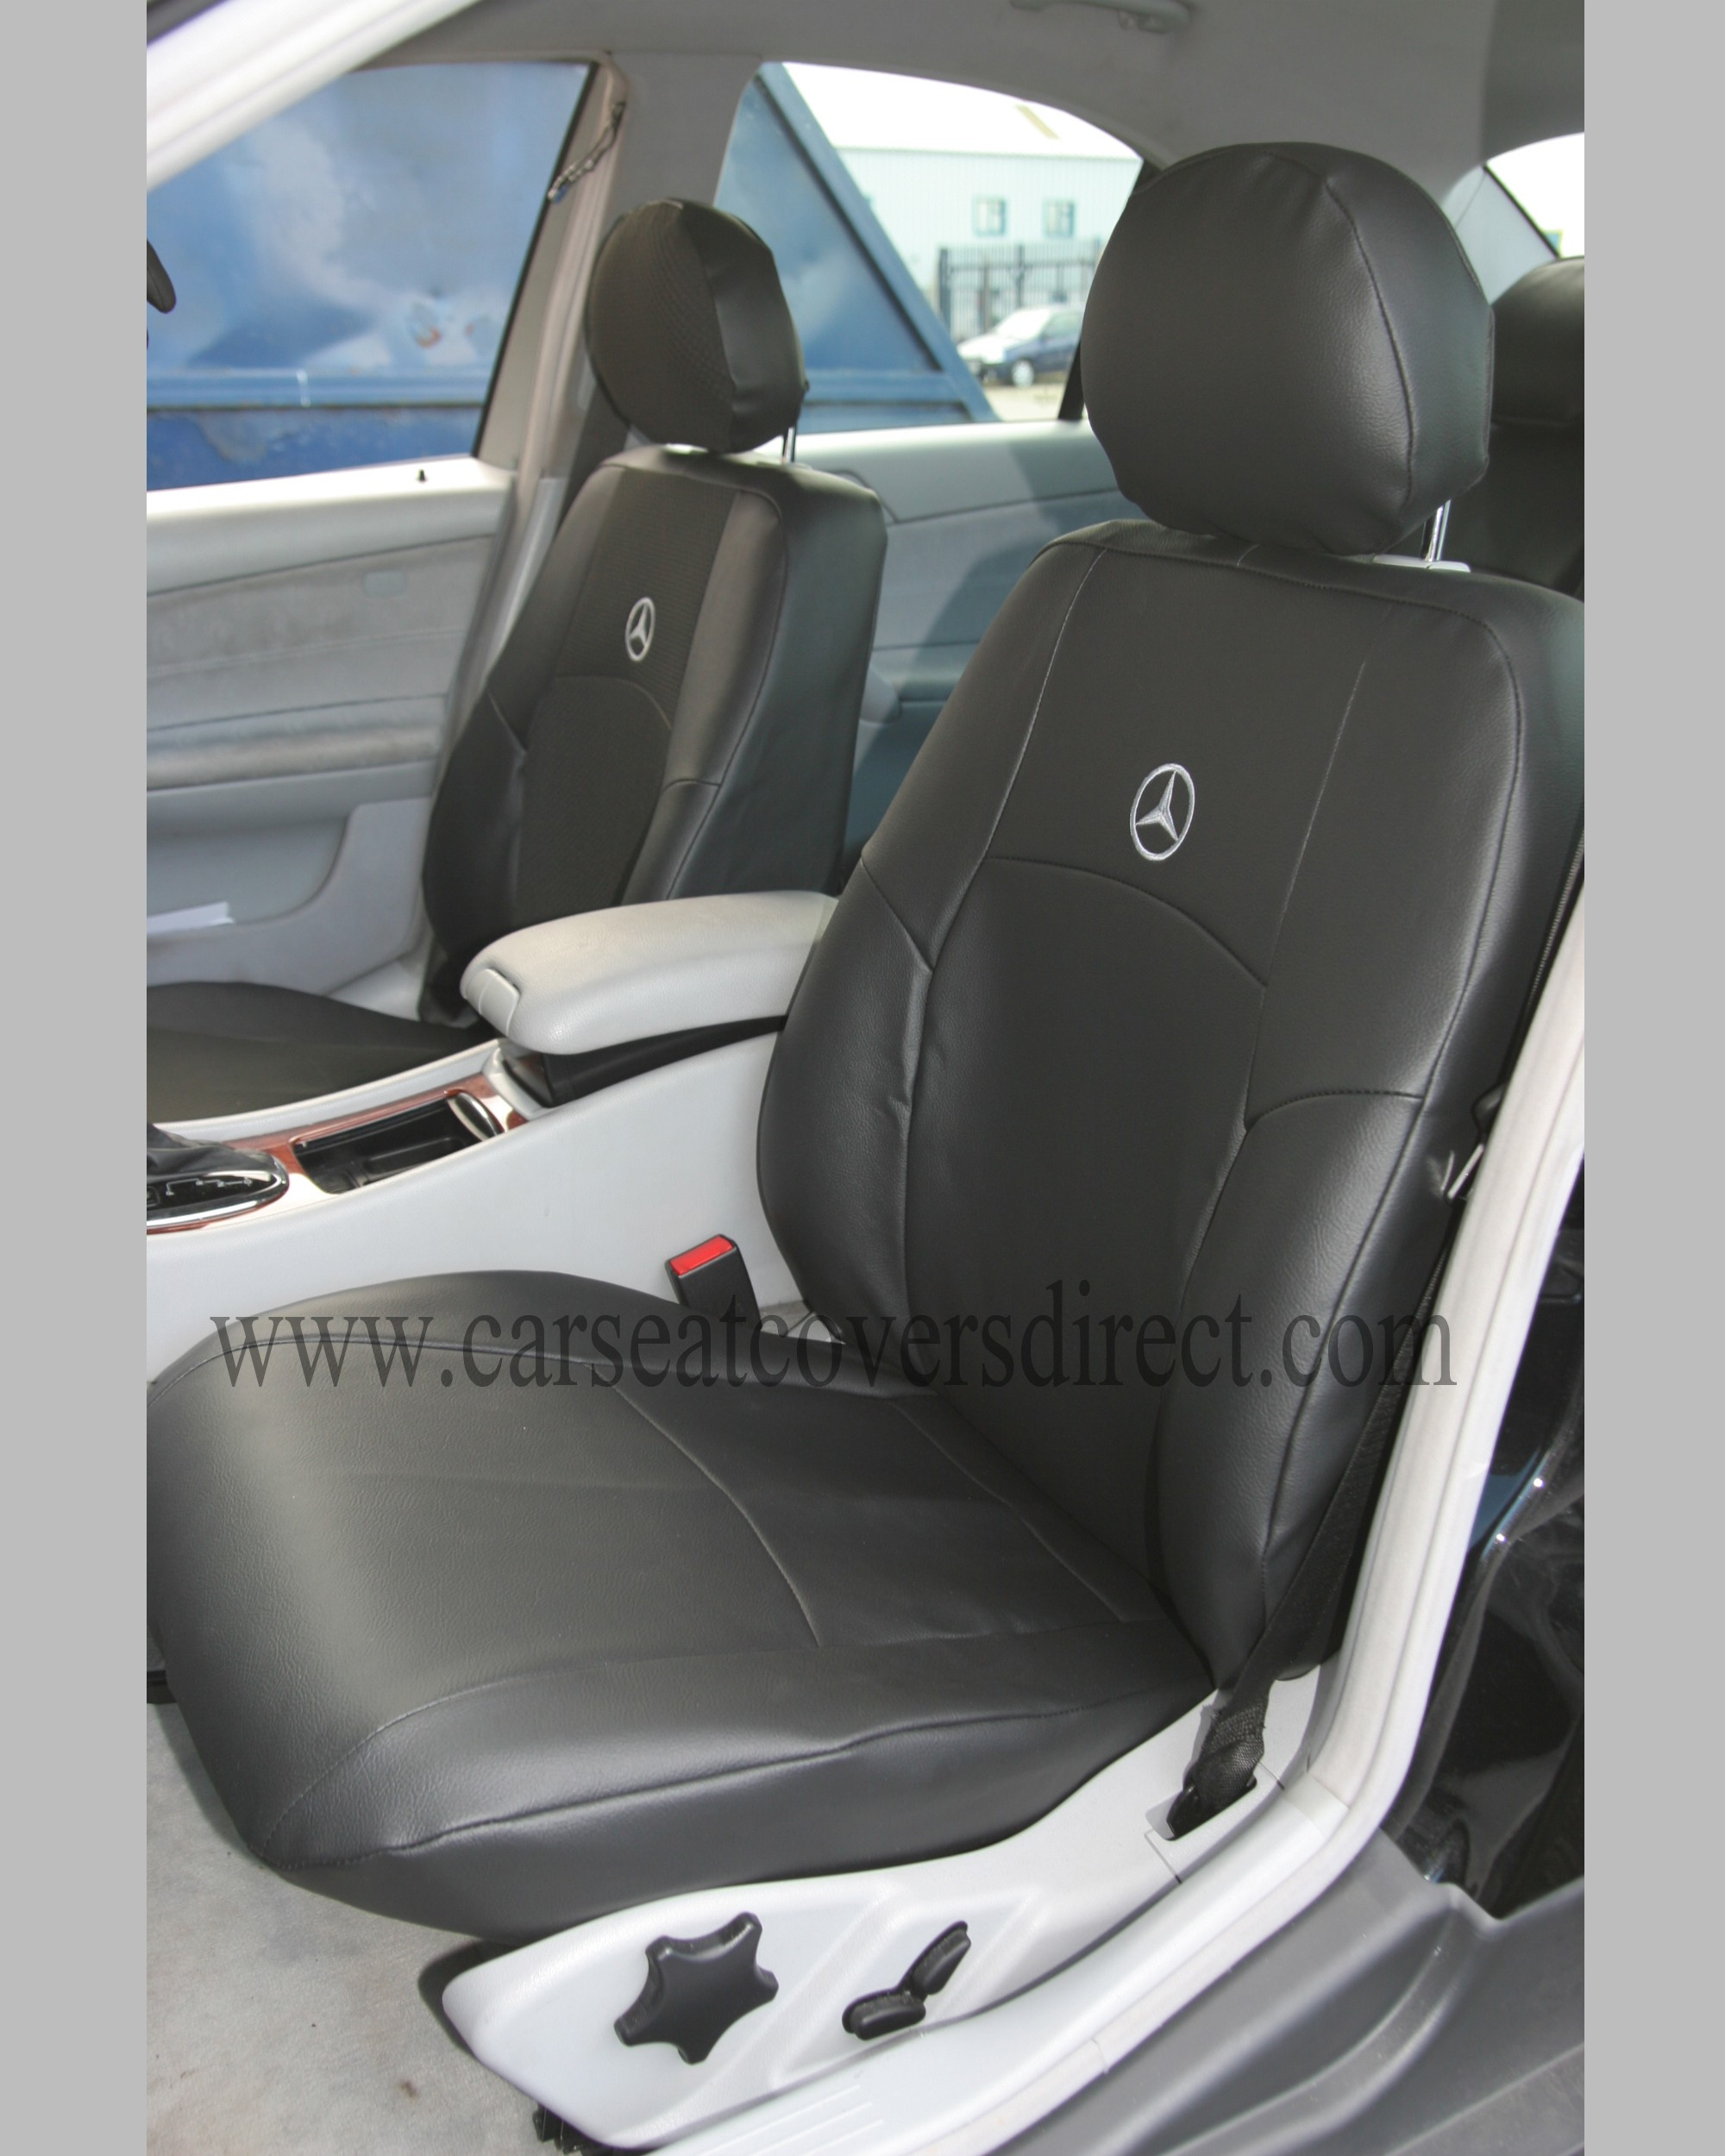 Seat covers for mercedes velcromag for Mercedes benz car covers